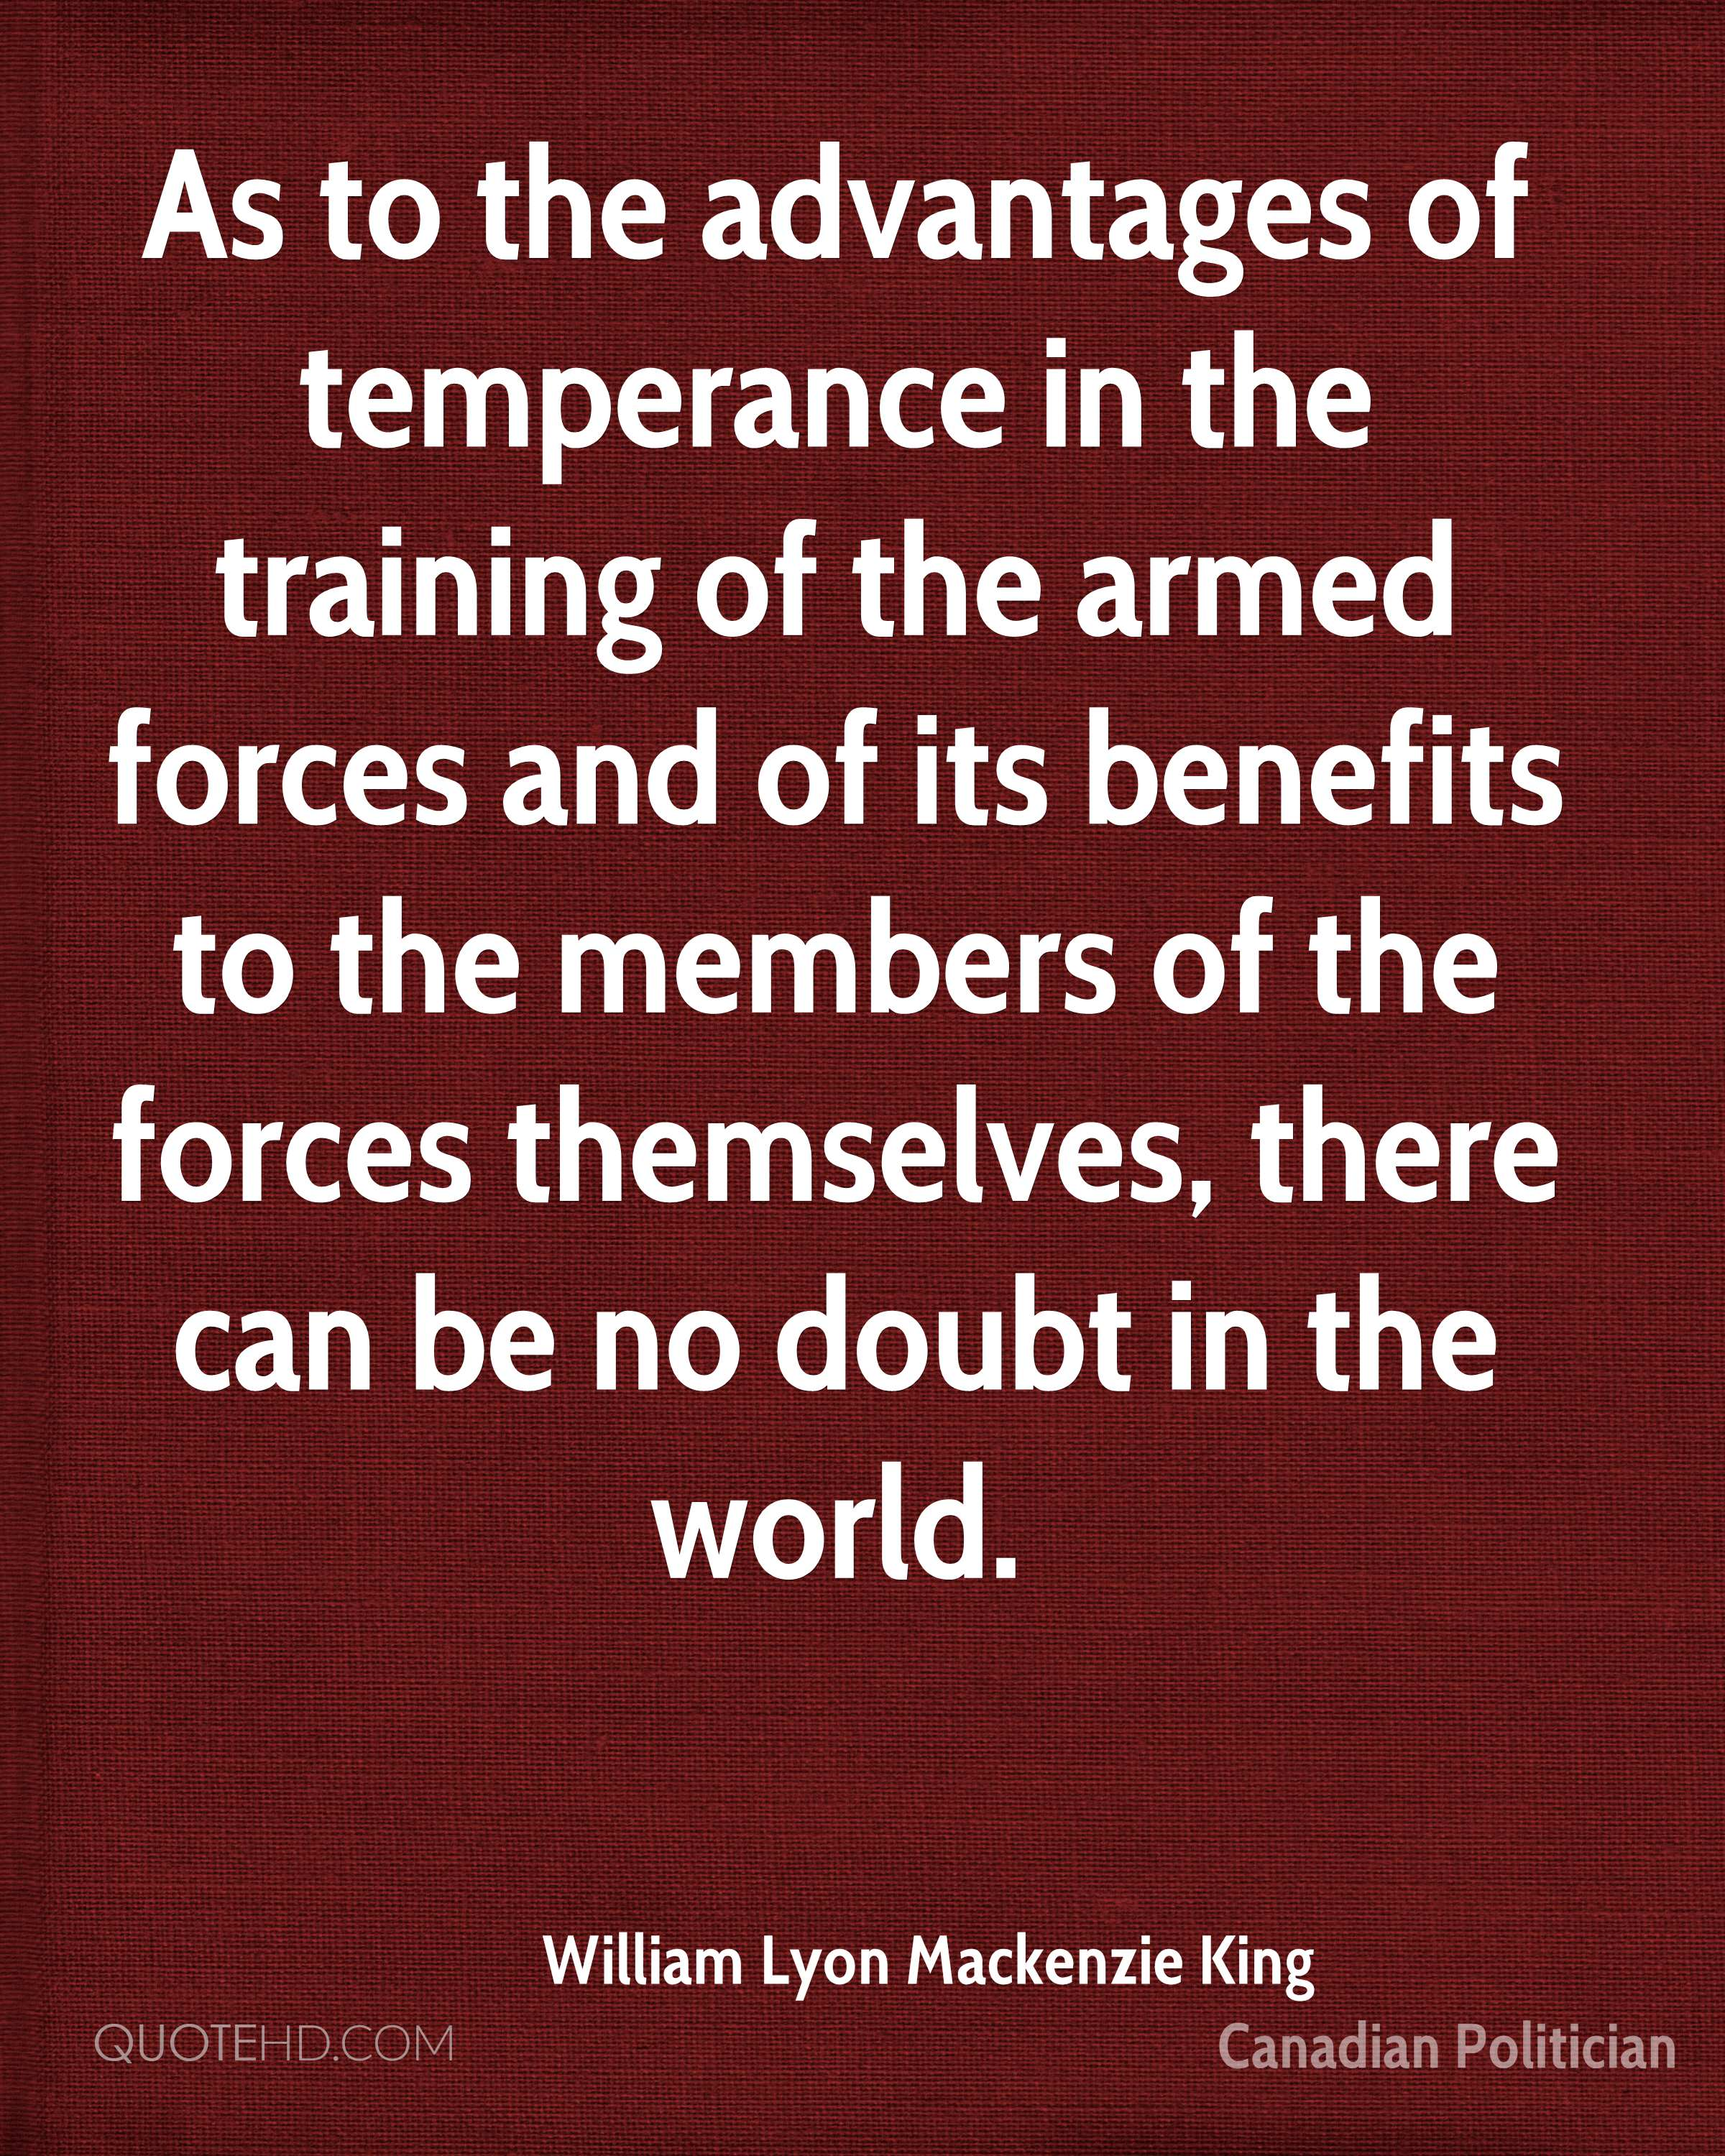 As to the advantages of temperance in the training of the armed forces and of its benefits to the members of the forces themselves, there can be no doubt in the world.